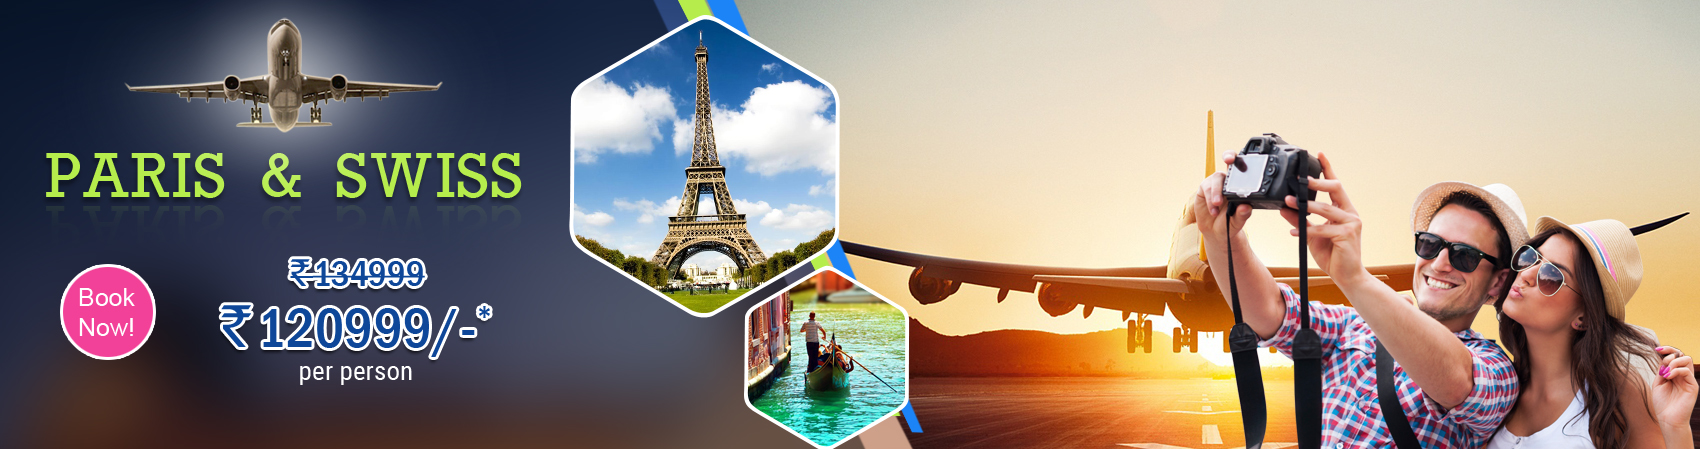 Paris Switzerland Tour Packages